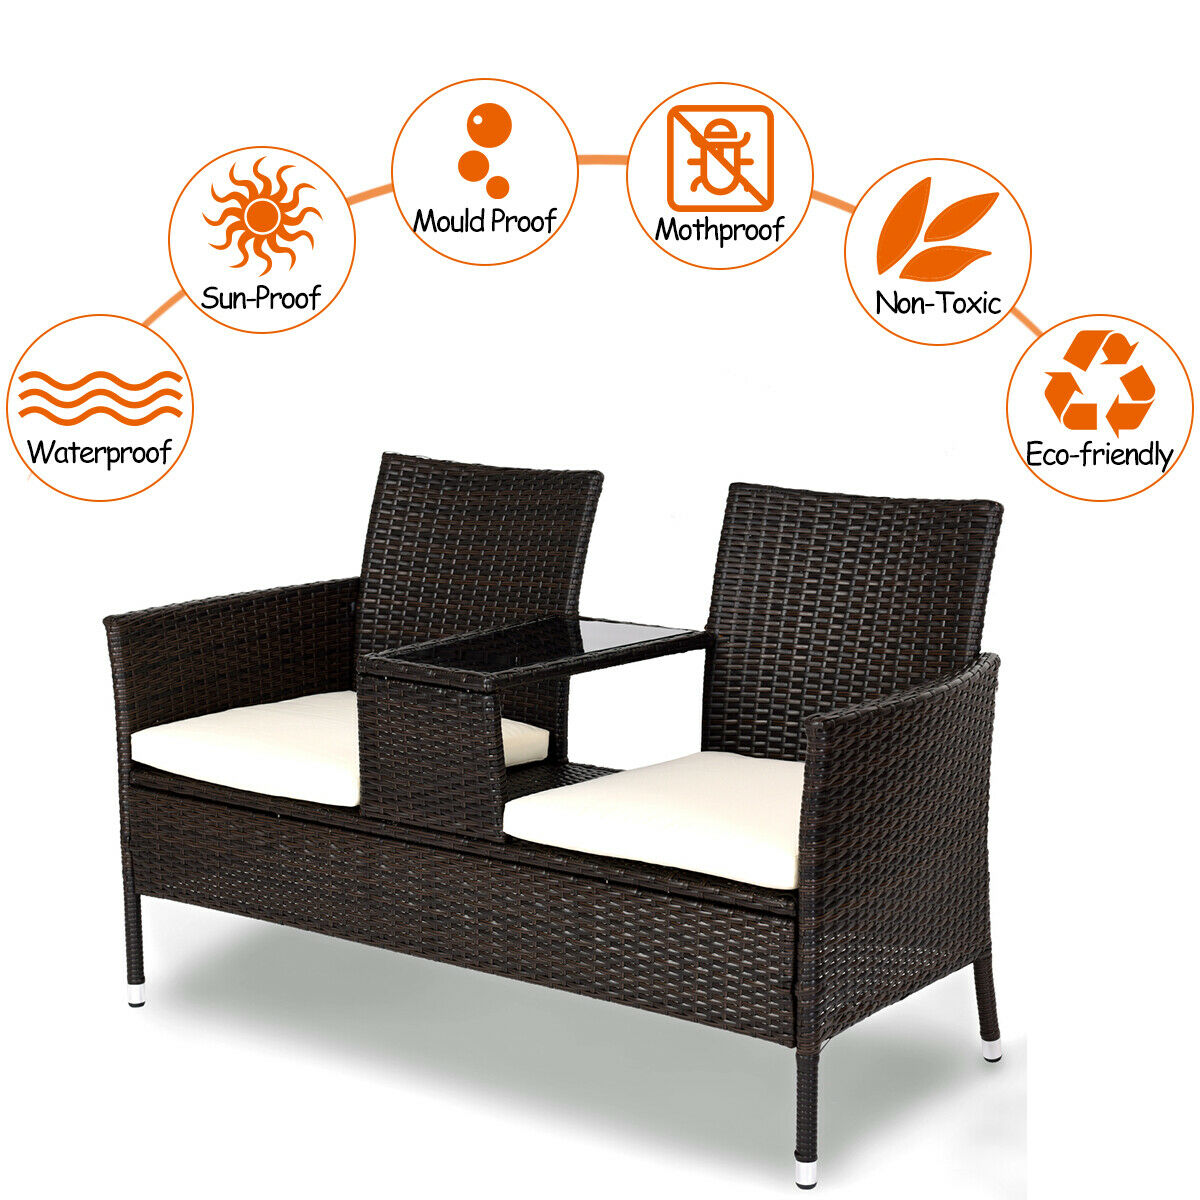 Costway Patio Rattan Chat Set Seat Sofa Loveseat Table Chairs w/ Cushion - image 6 de 9